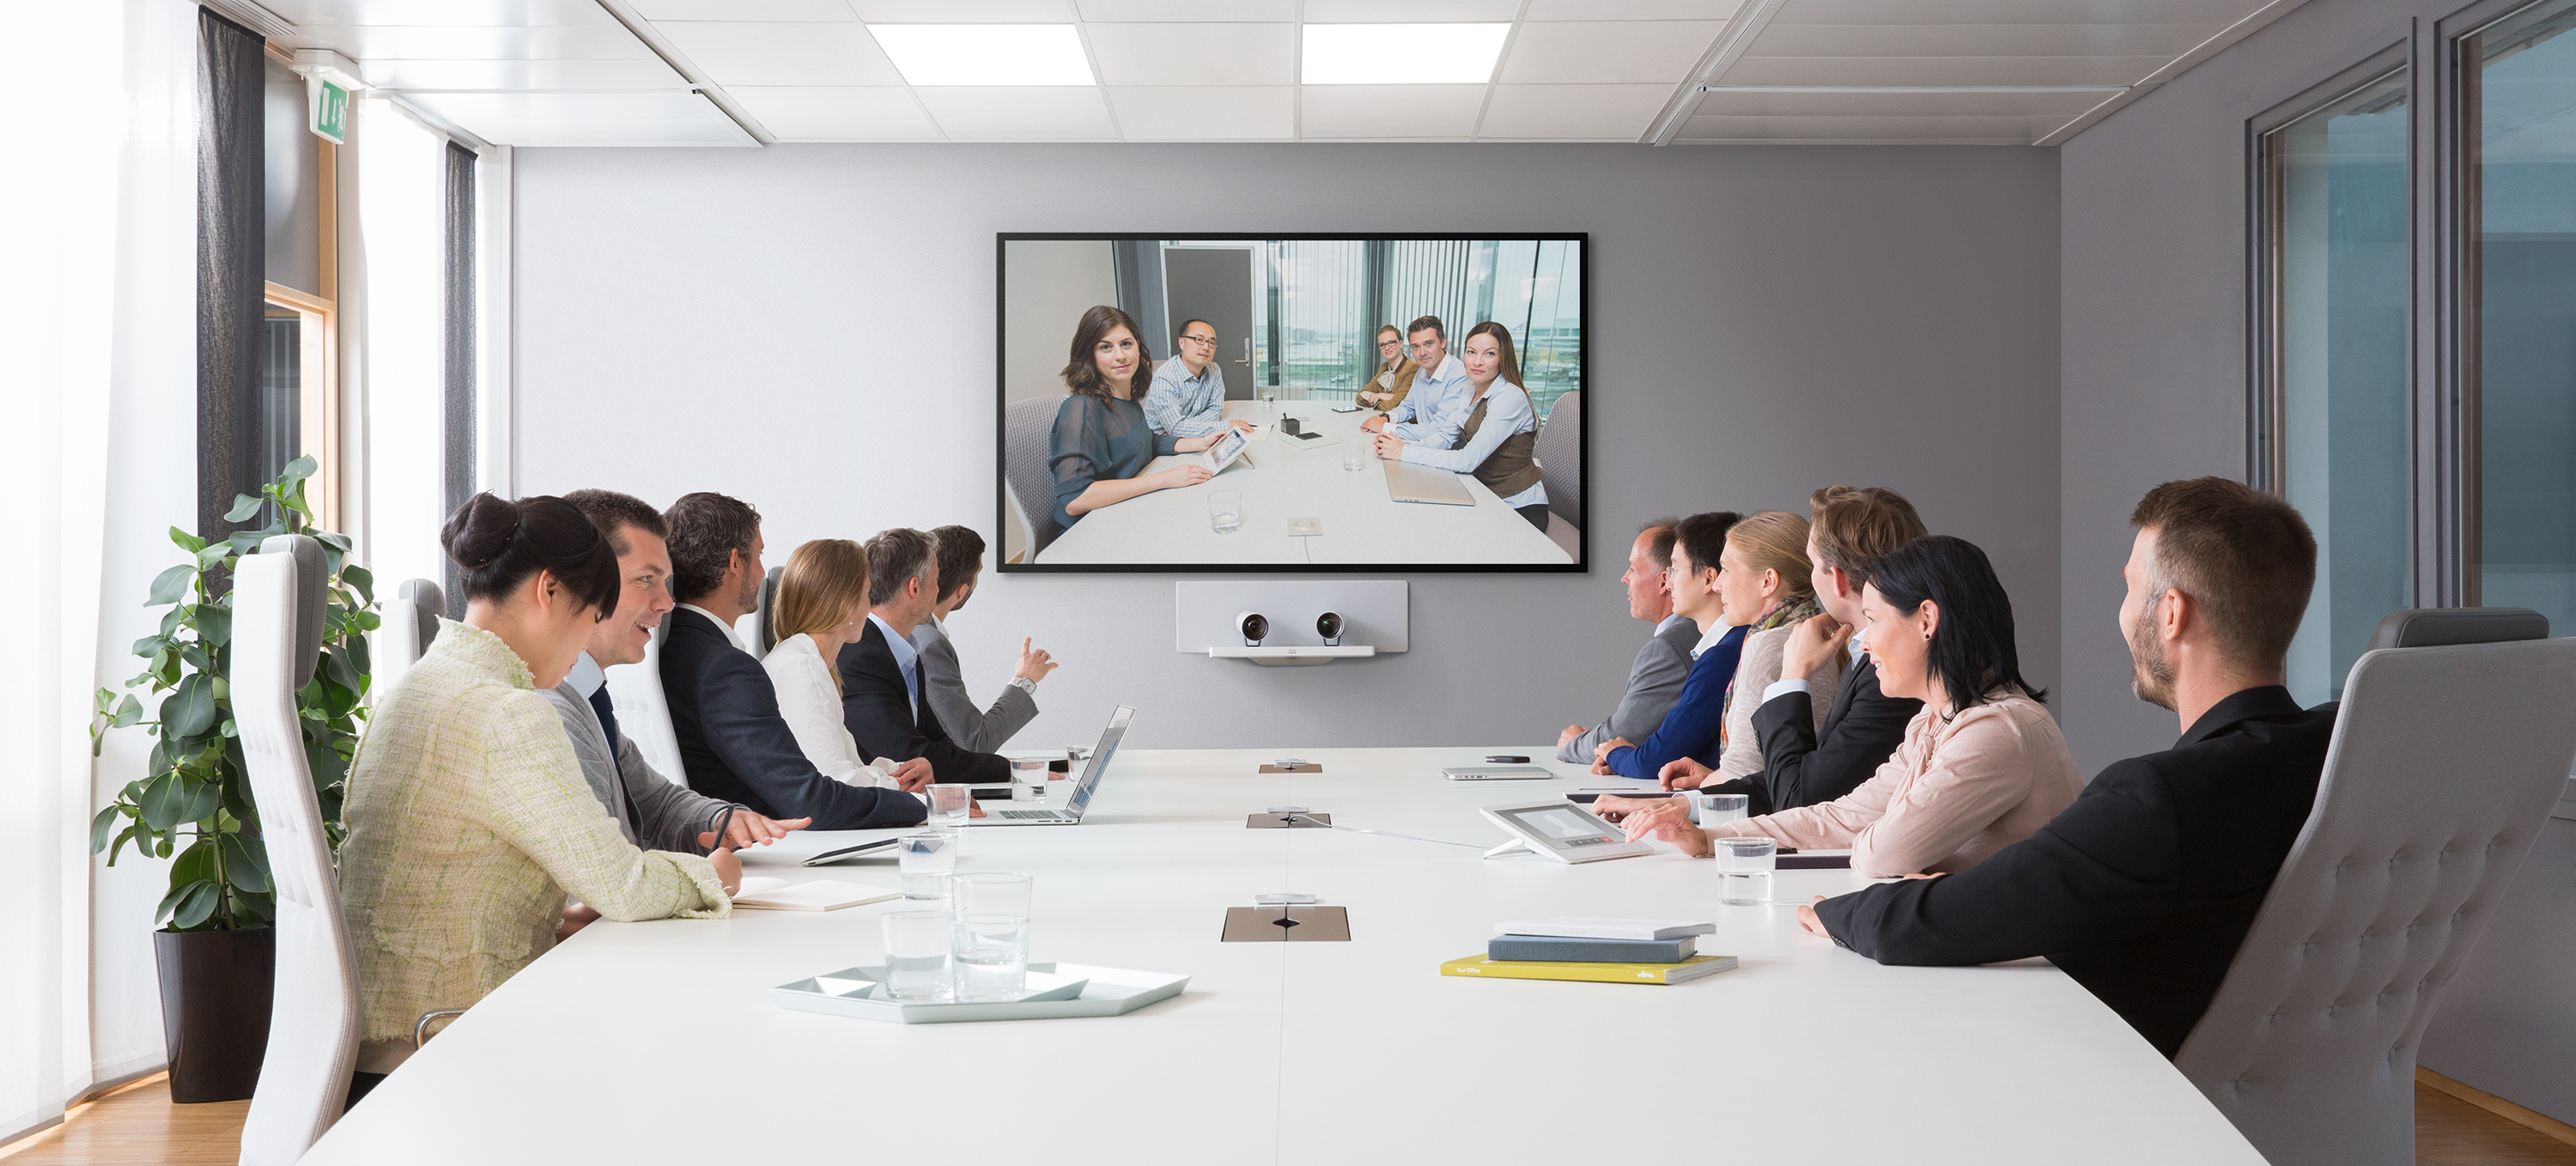 Cisco New video and collaboration endpoints March 2014 2